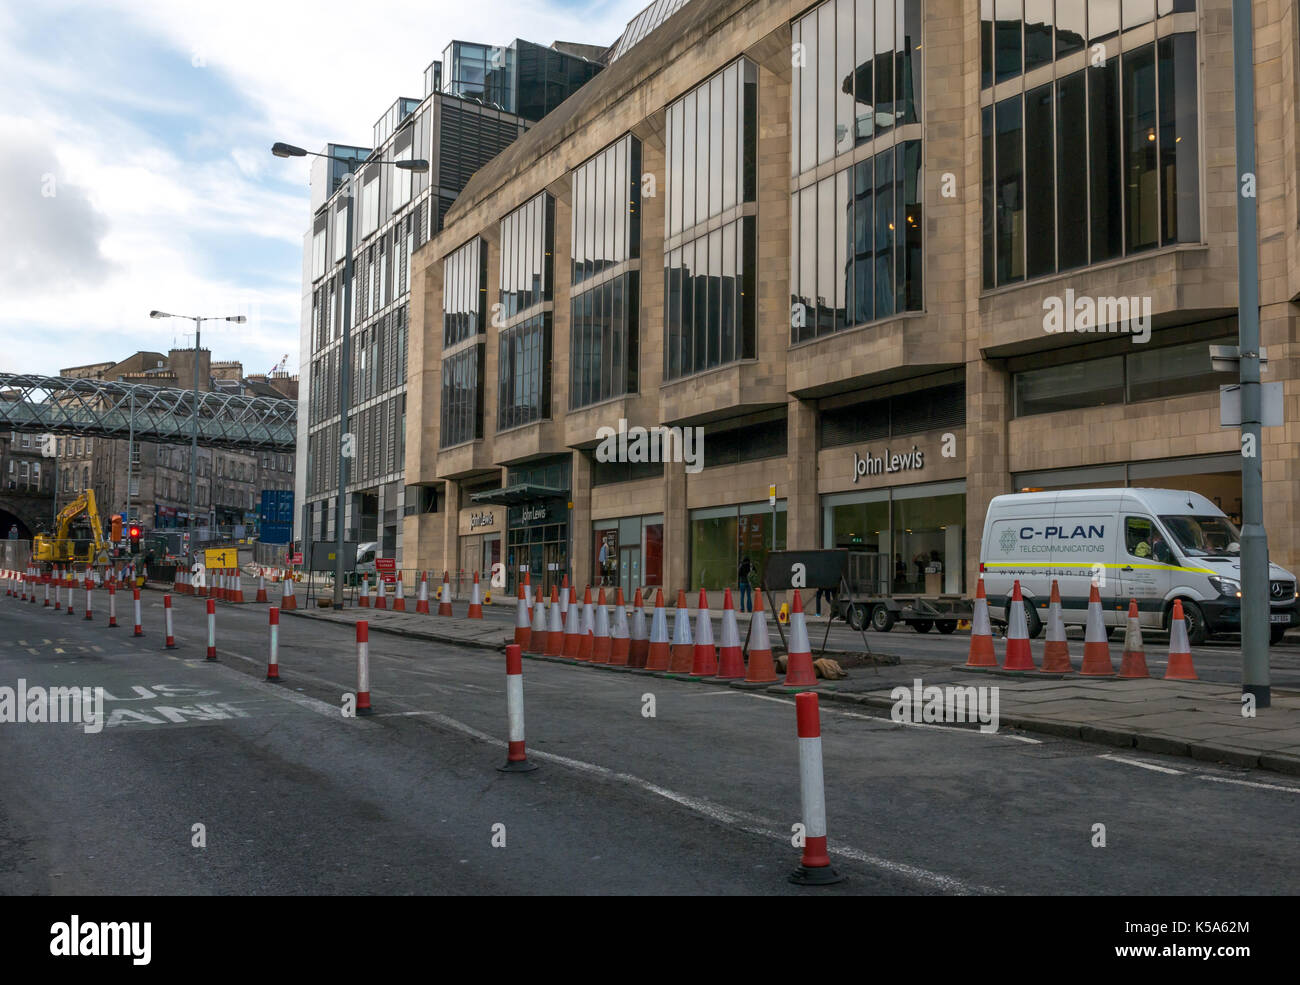 Construction work closes Leith Street, Edinburgh, Scotland, UK, for 10 months, demolishing St James Centre and revamp next to John Lewis - Stock Image